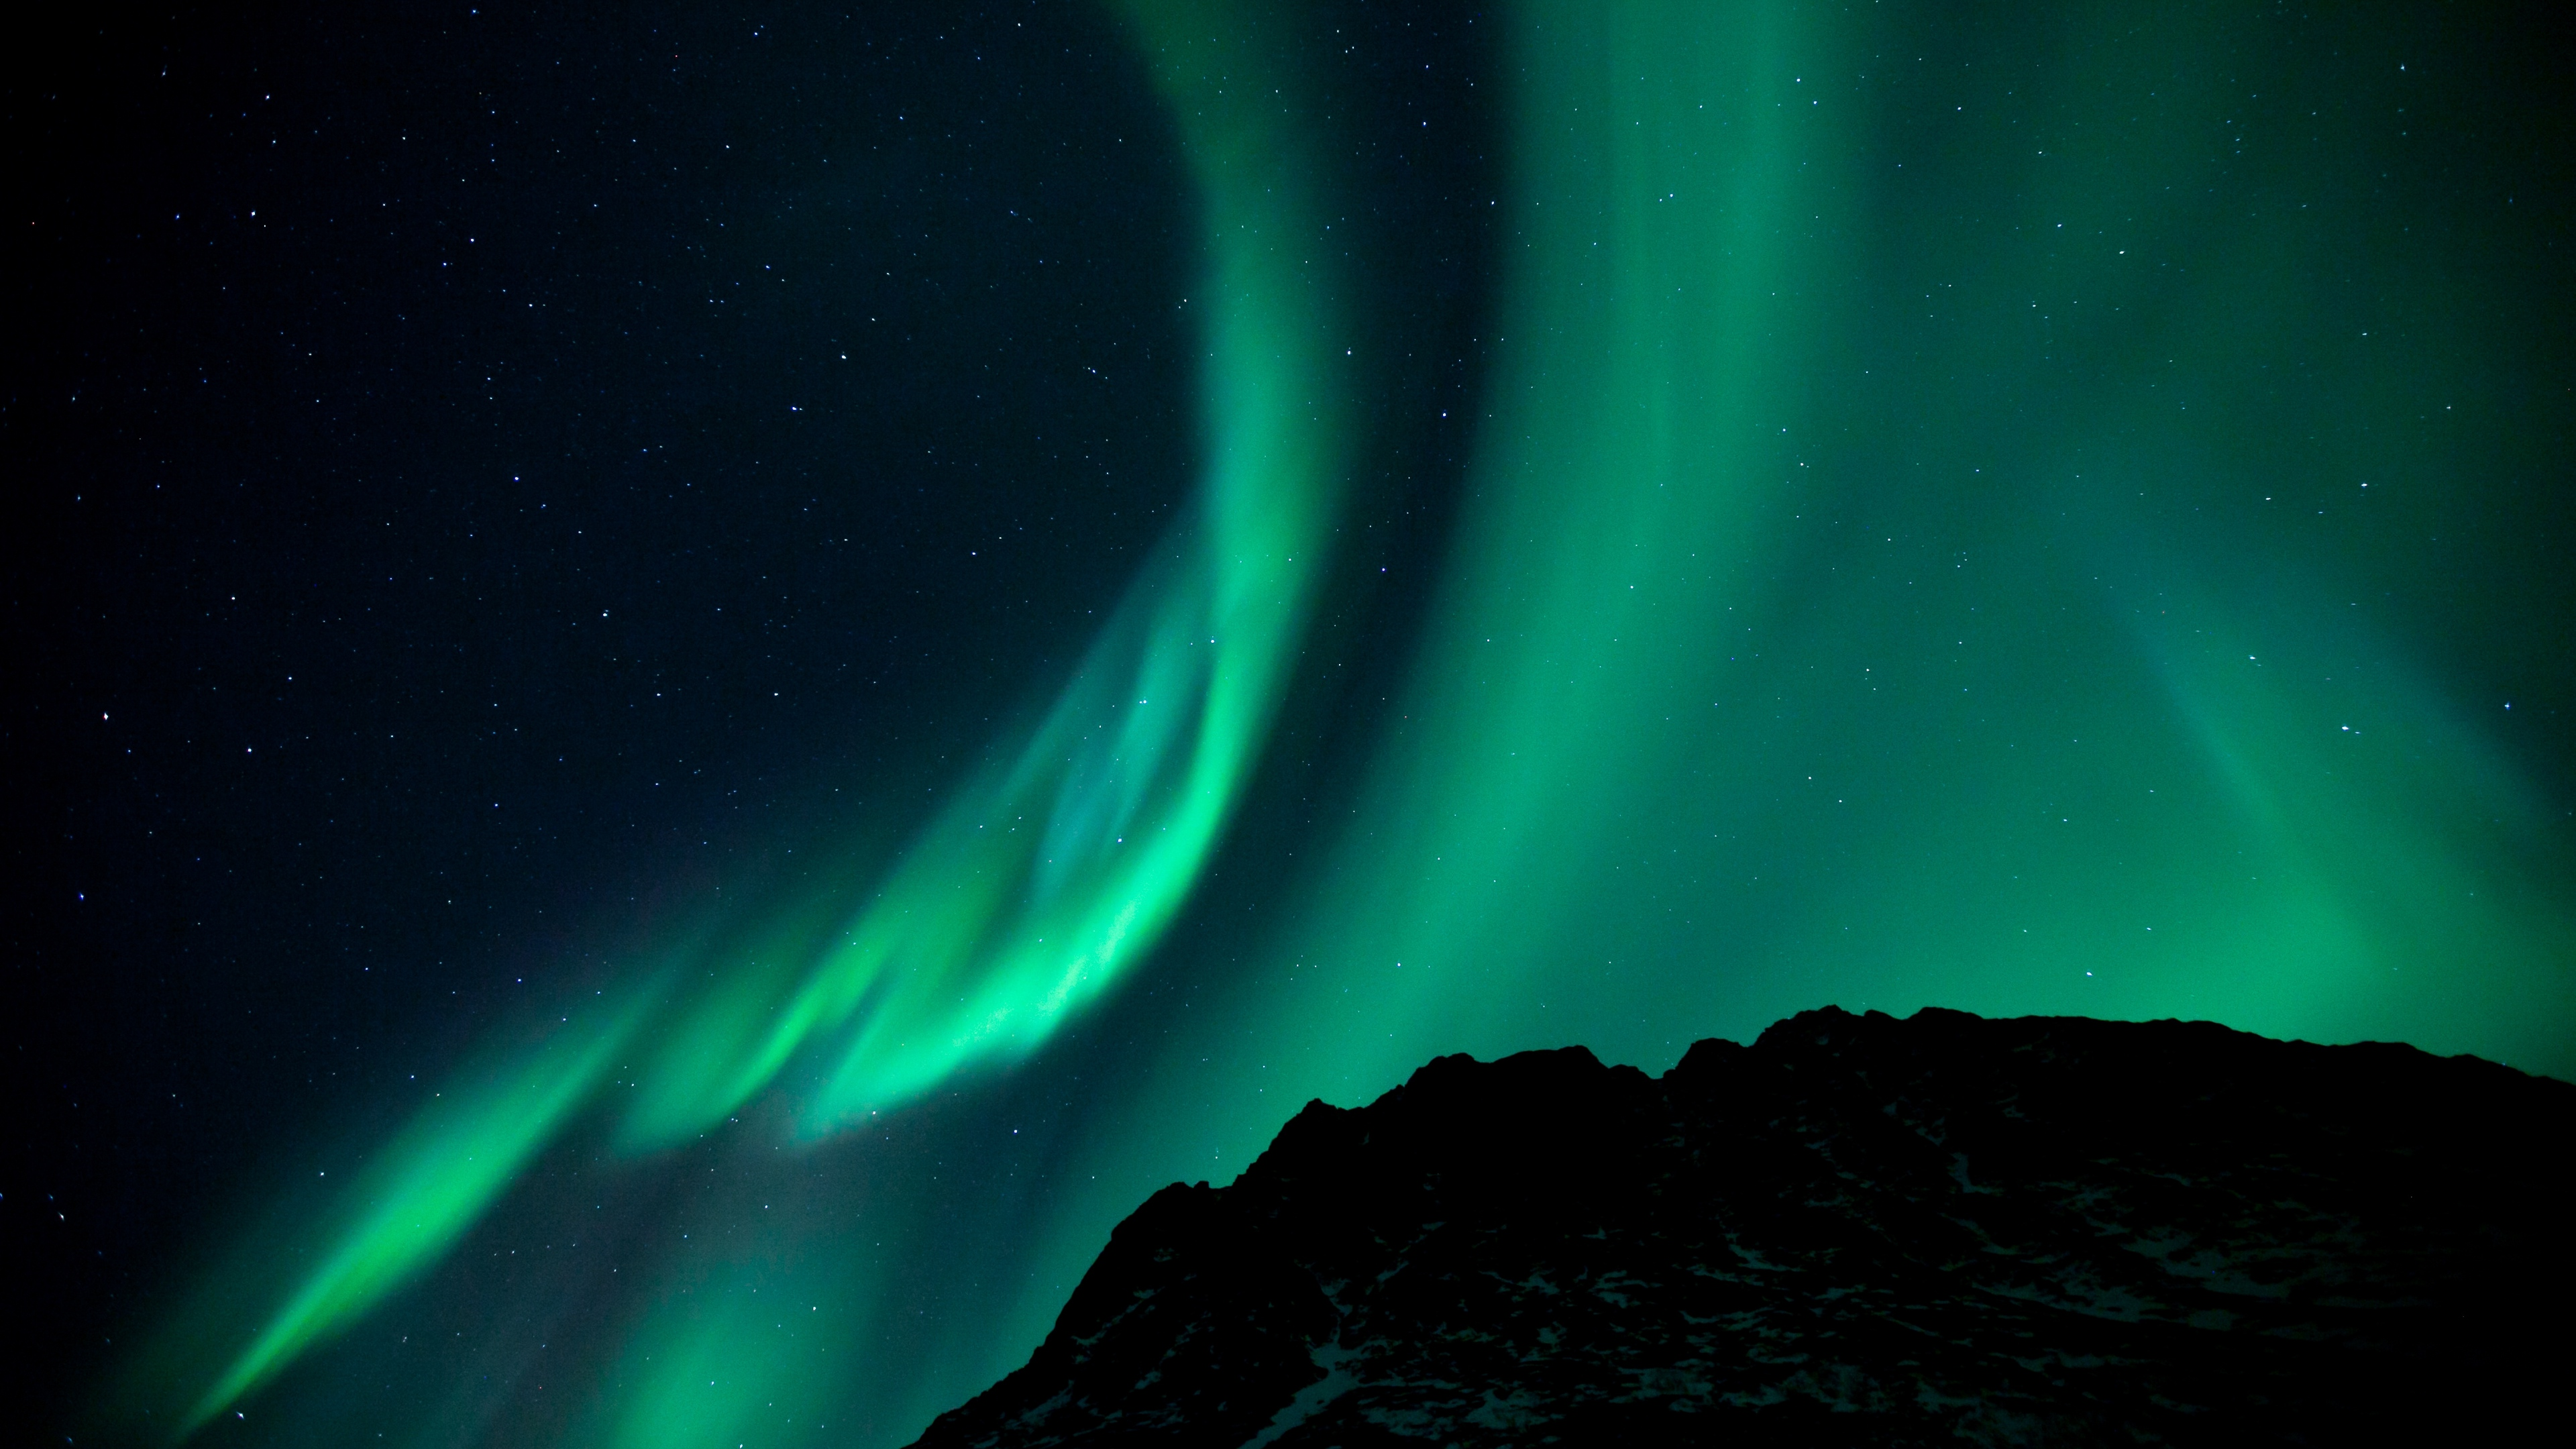 26+] Northern Lights 4K Wallpapers on